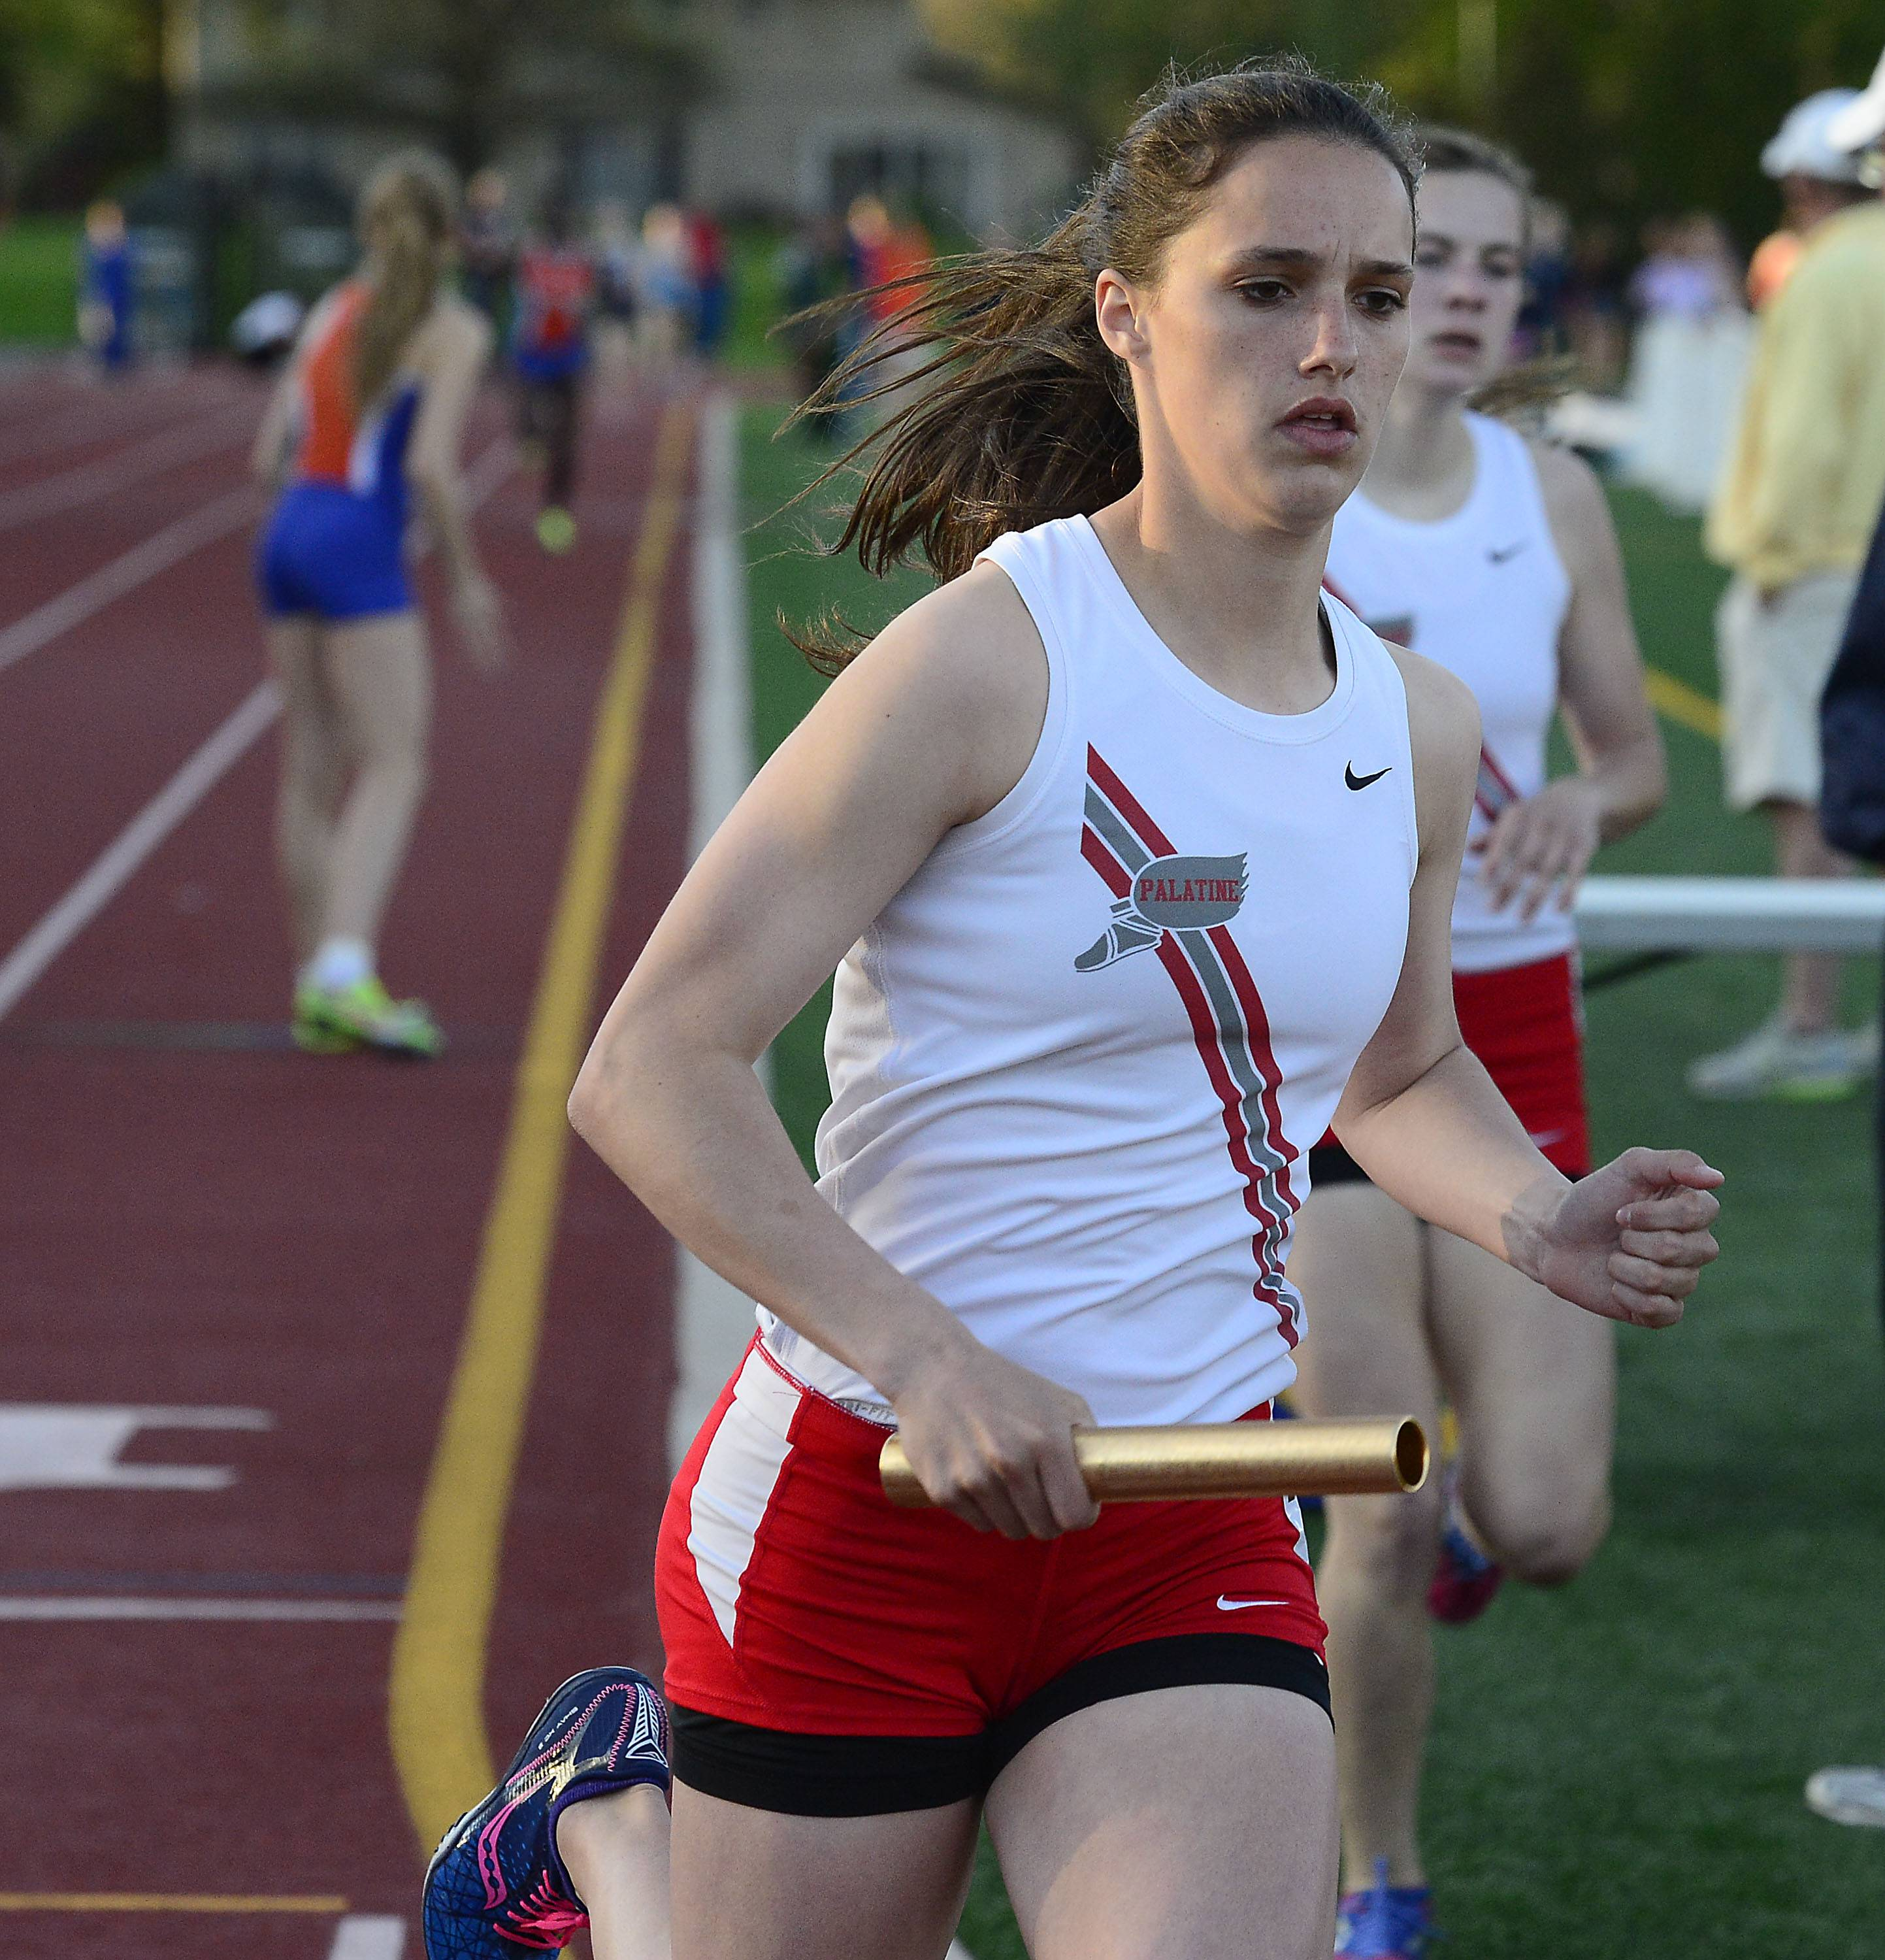 Palatine's Cassidy McPherson takes the handoff from teammate Kelly O' Brien in the 4x800 relay in the MSL meet at Wheeling on Friday.